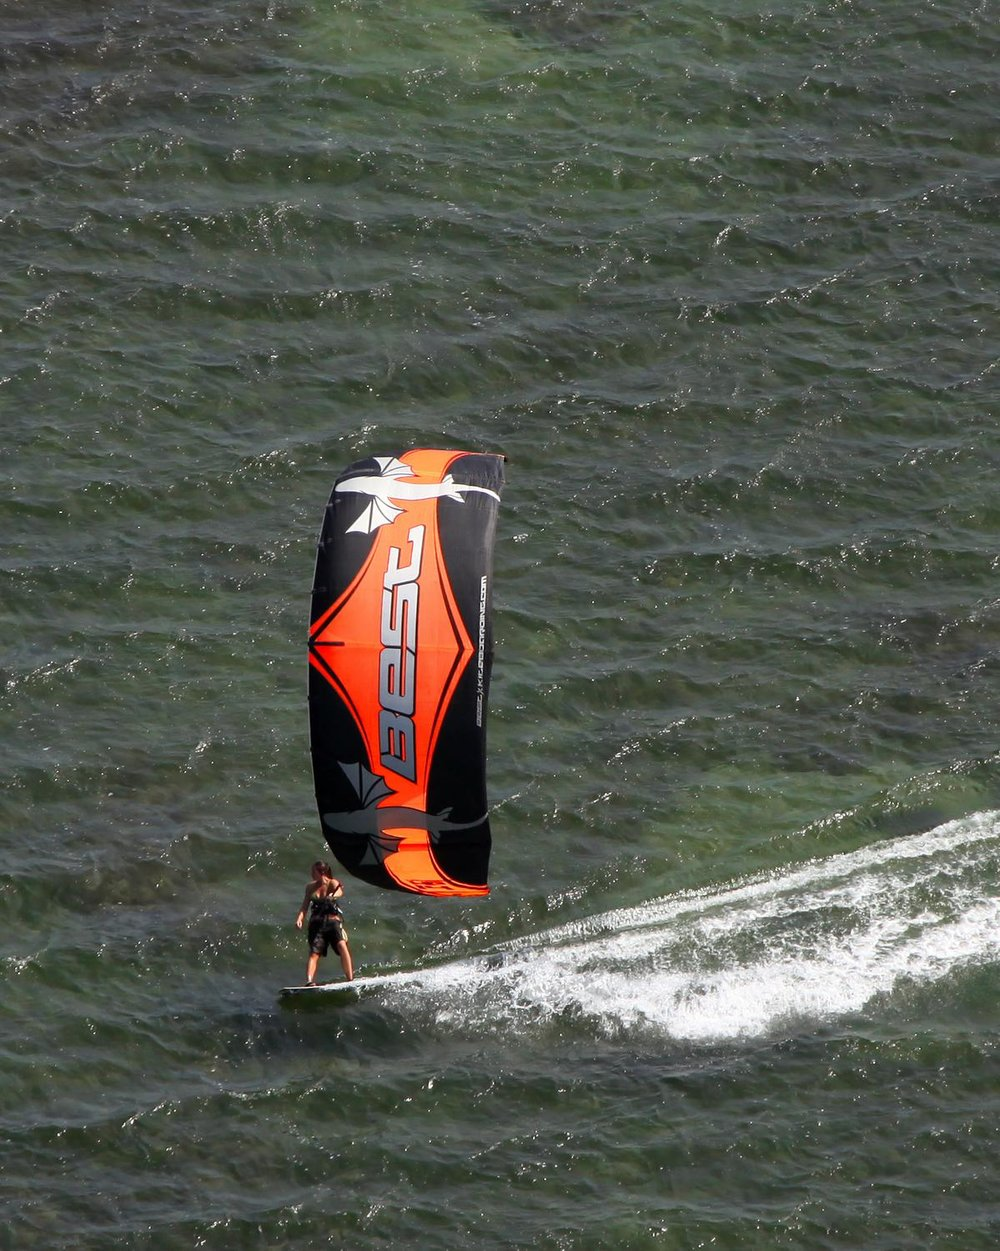 Kite Boarding - South Padre Island Aerial Photographer - Aerial Drone Image - Aerial Drone Video - South Padre Island, TX - Rio Grande Valley, Texas